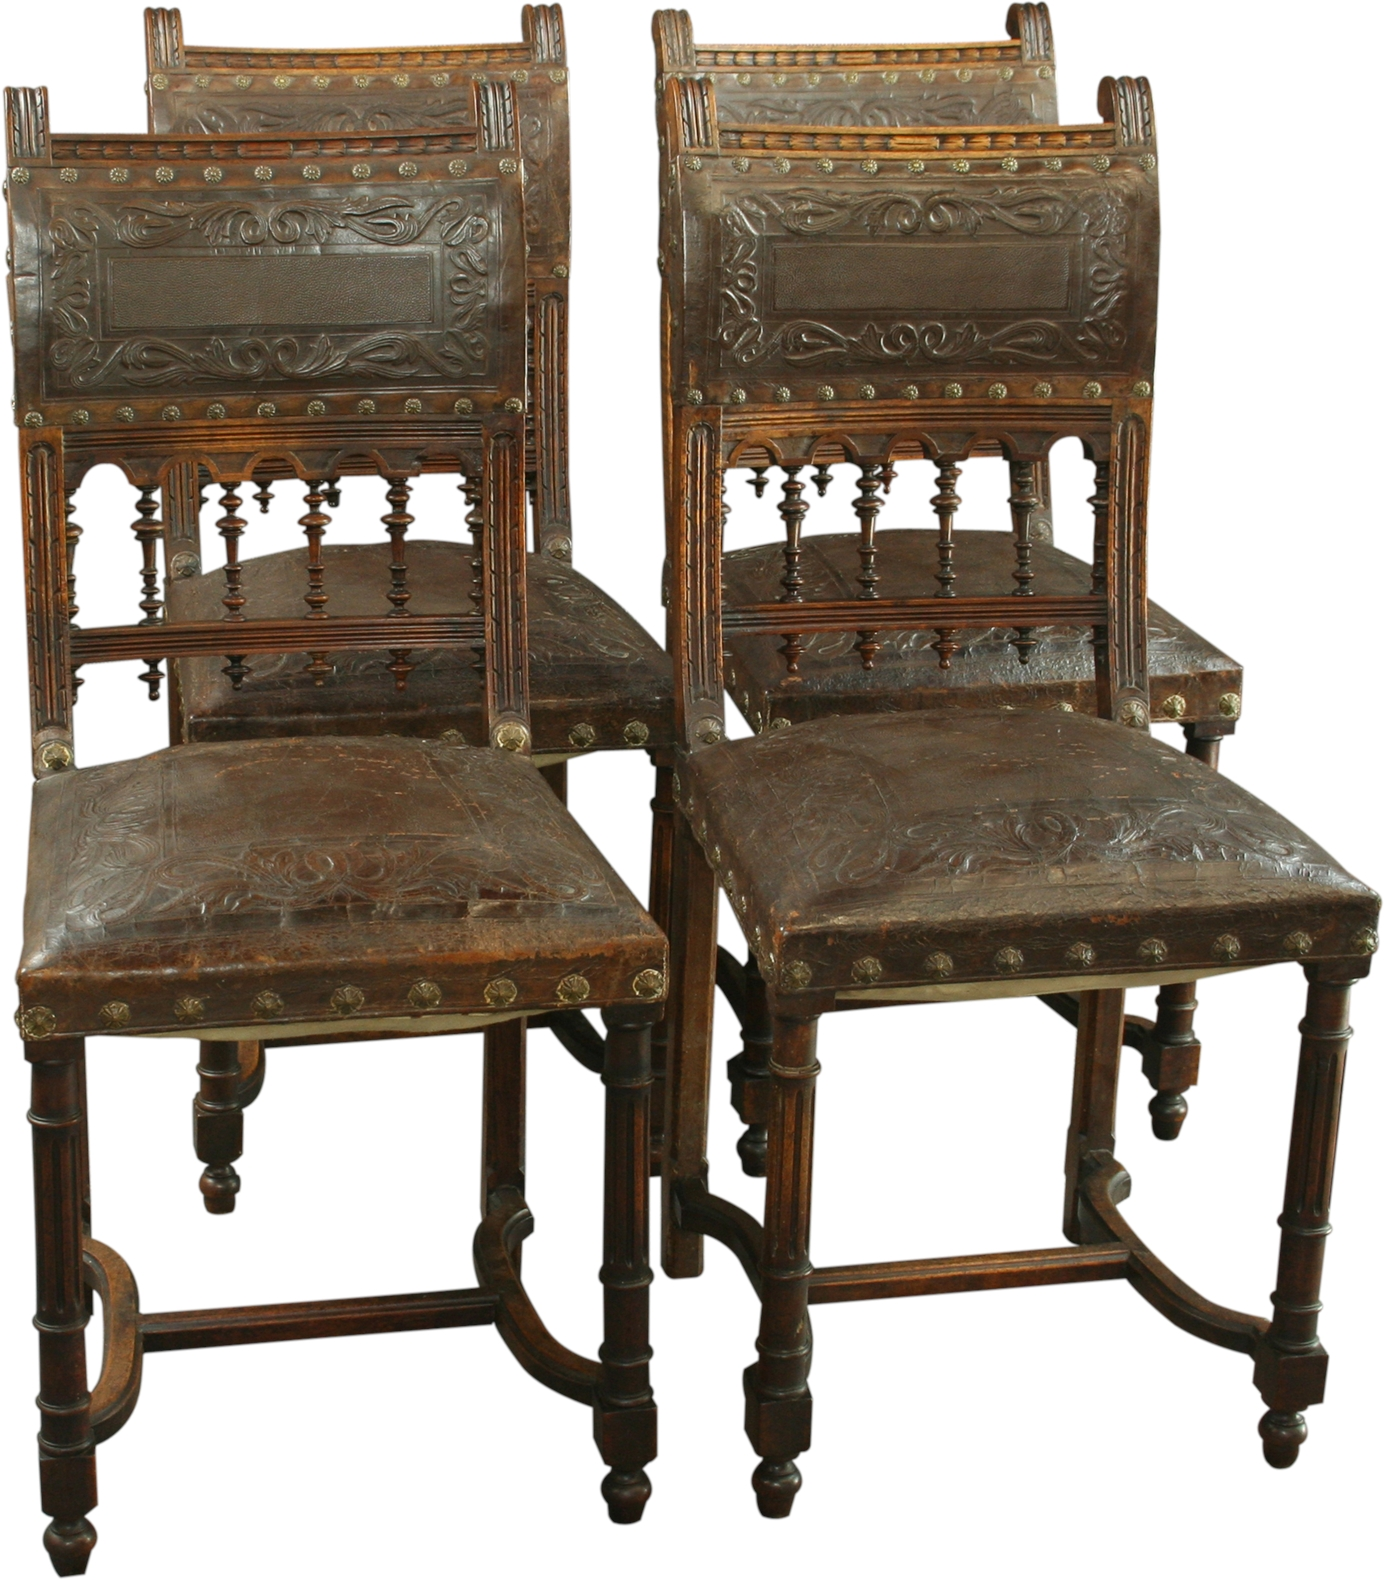 Antique Chairs Ebay Antique Walnut French Renaissance Henry Ii Dining Chair